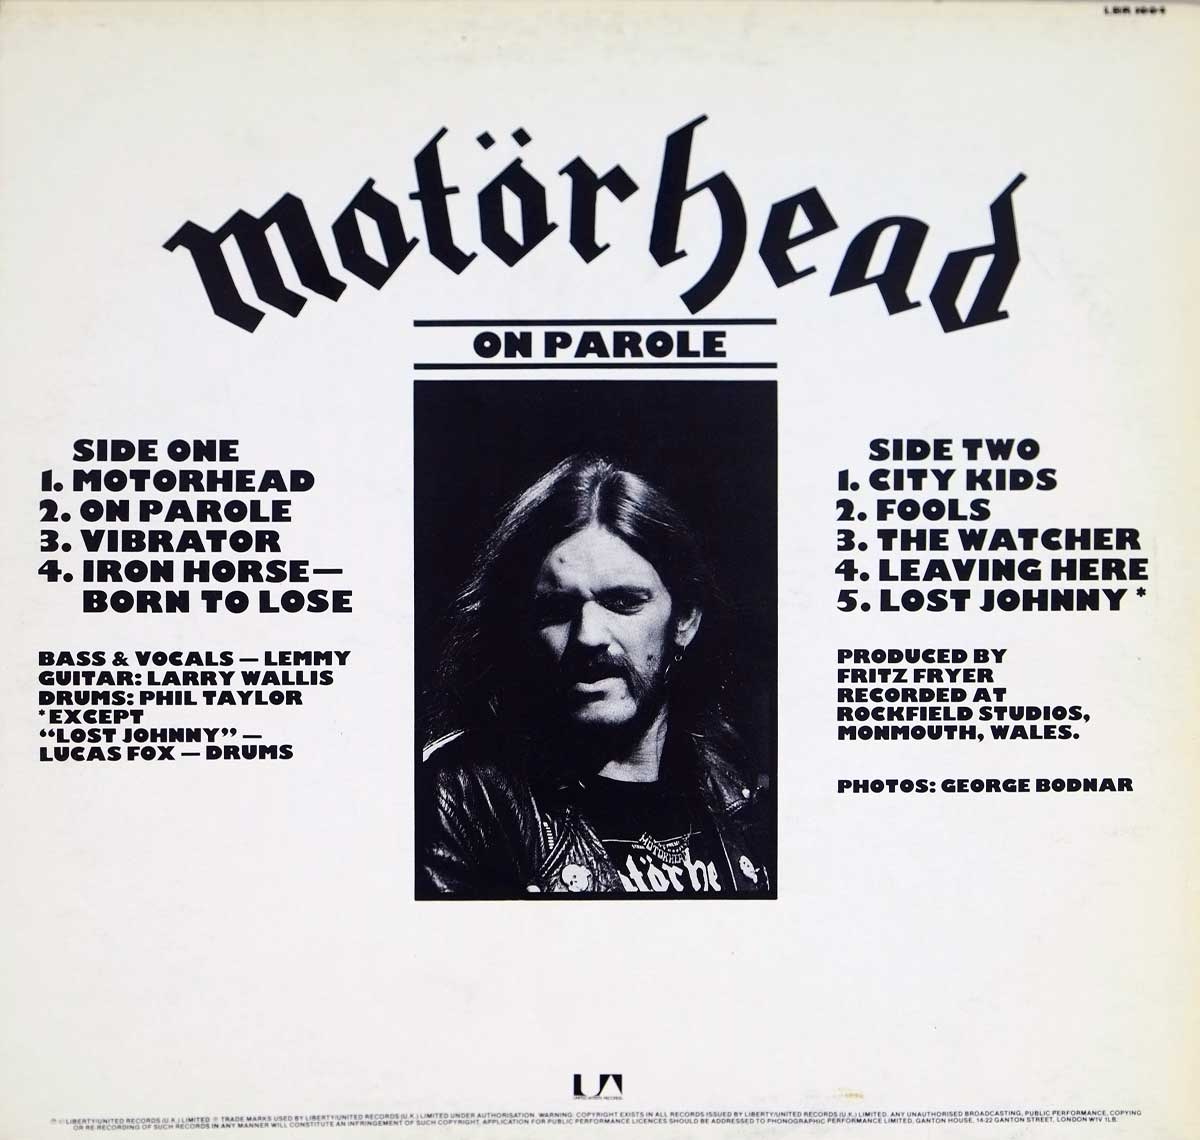 Photo of album back cover MOTORHEAD - On Parole ( British Heavy Metal )